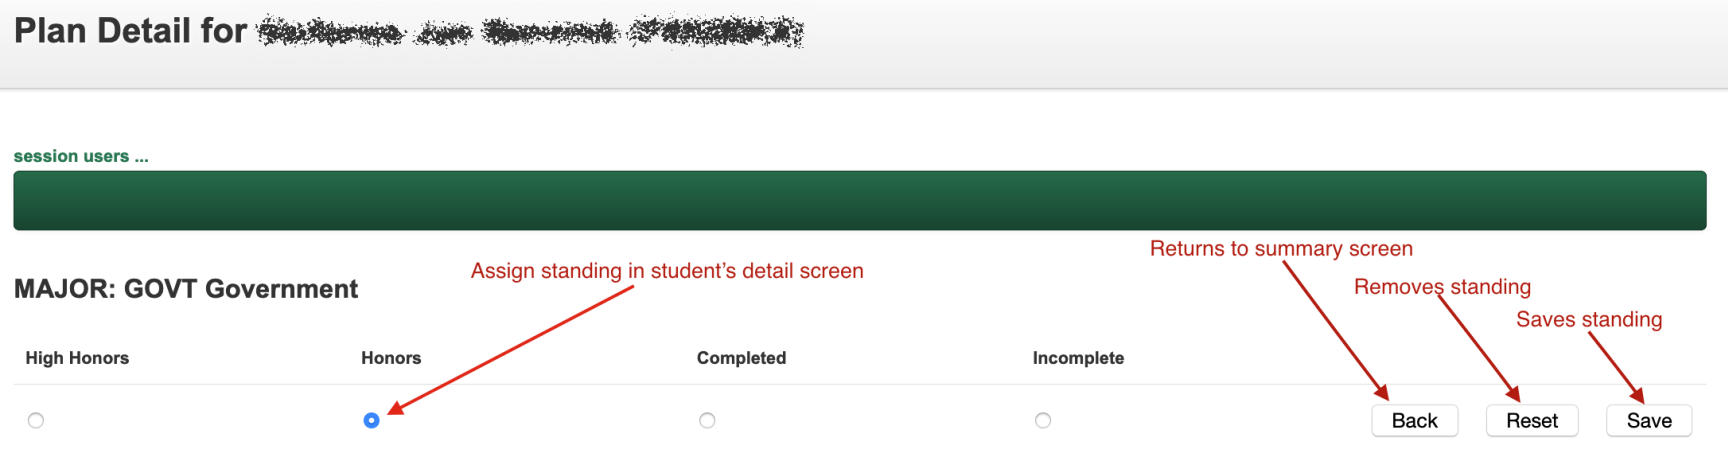 assign status student detail screen